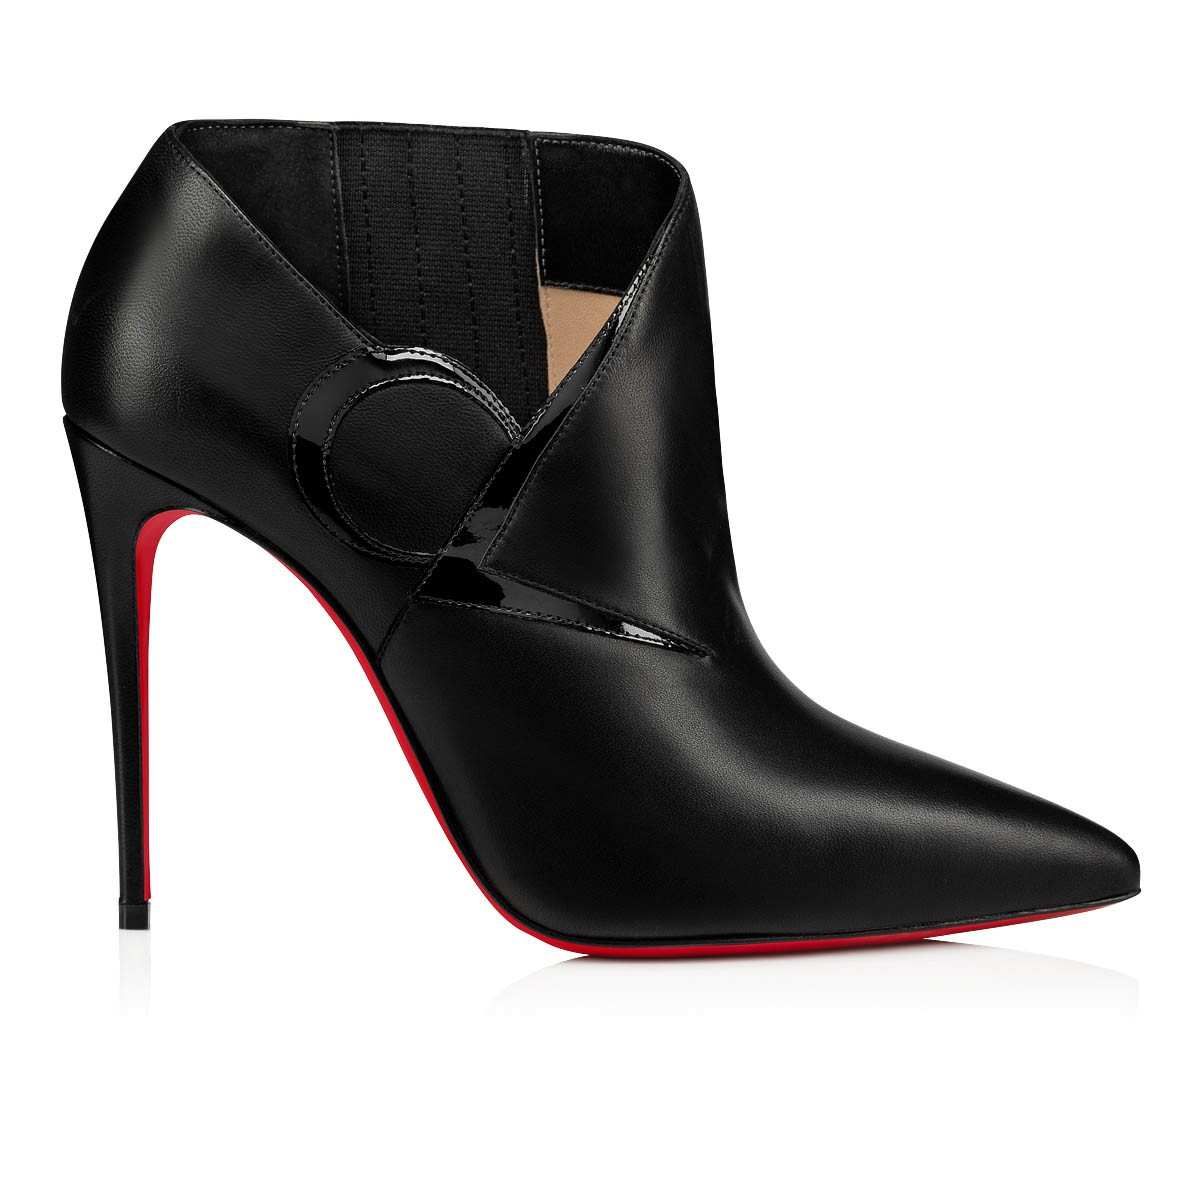 Souliers - Cl Bootie - Christian Louboutin